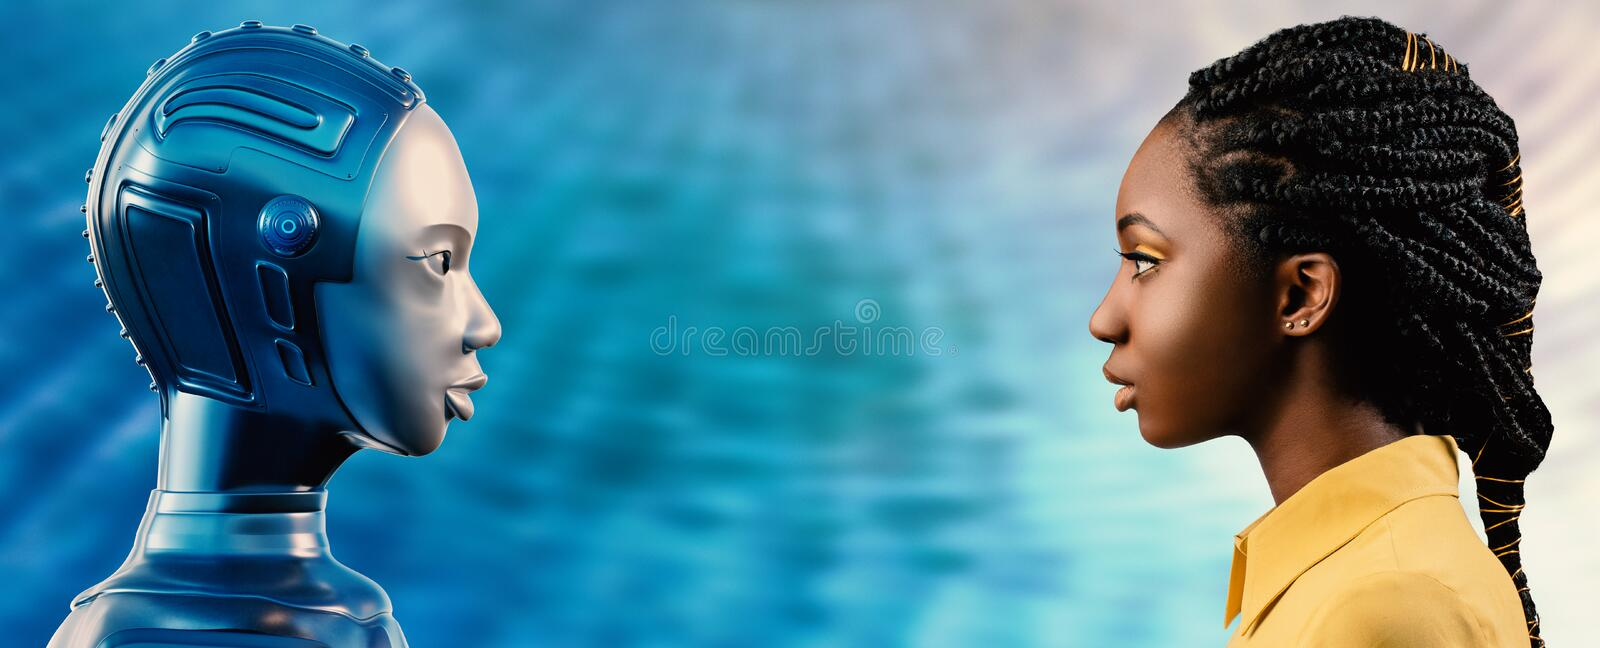 Side view of African woman looking at robot avatar royalty free illustration